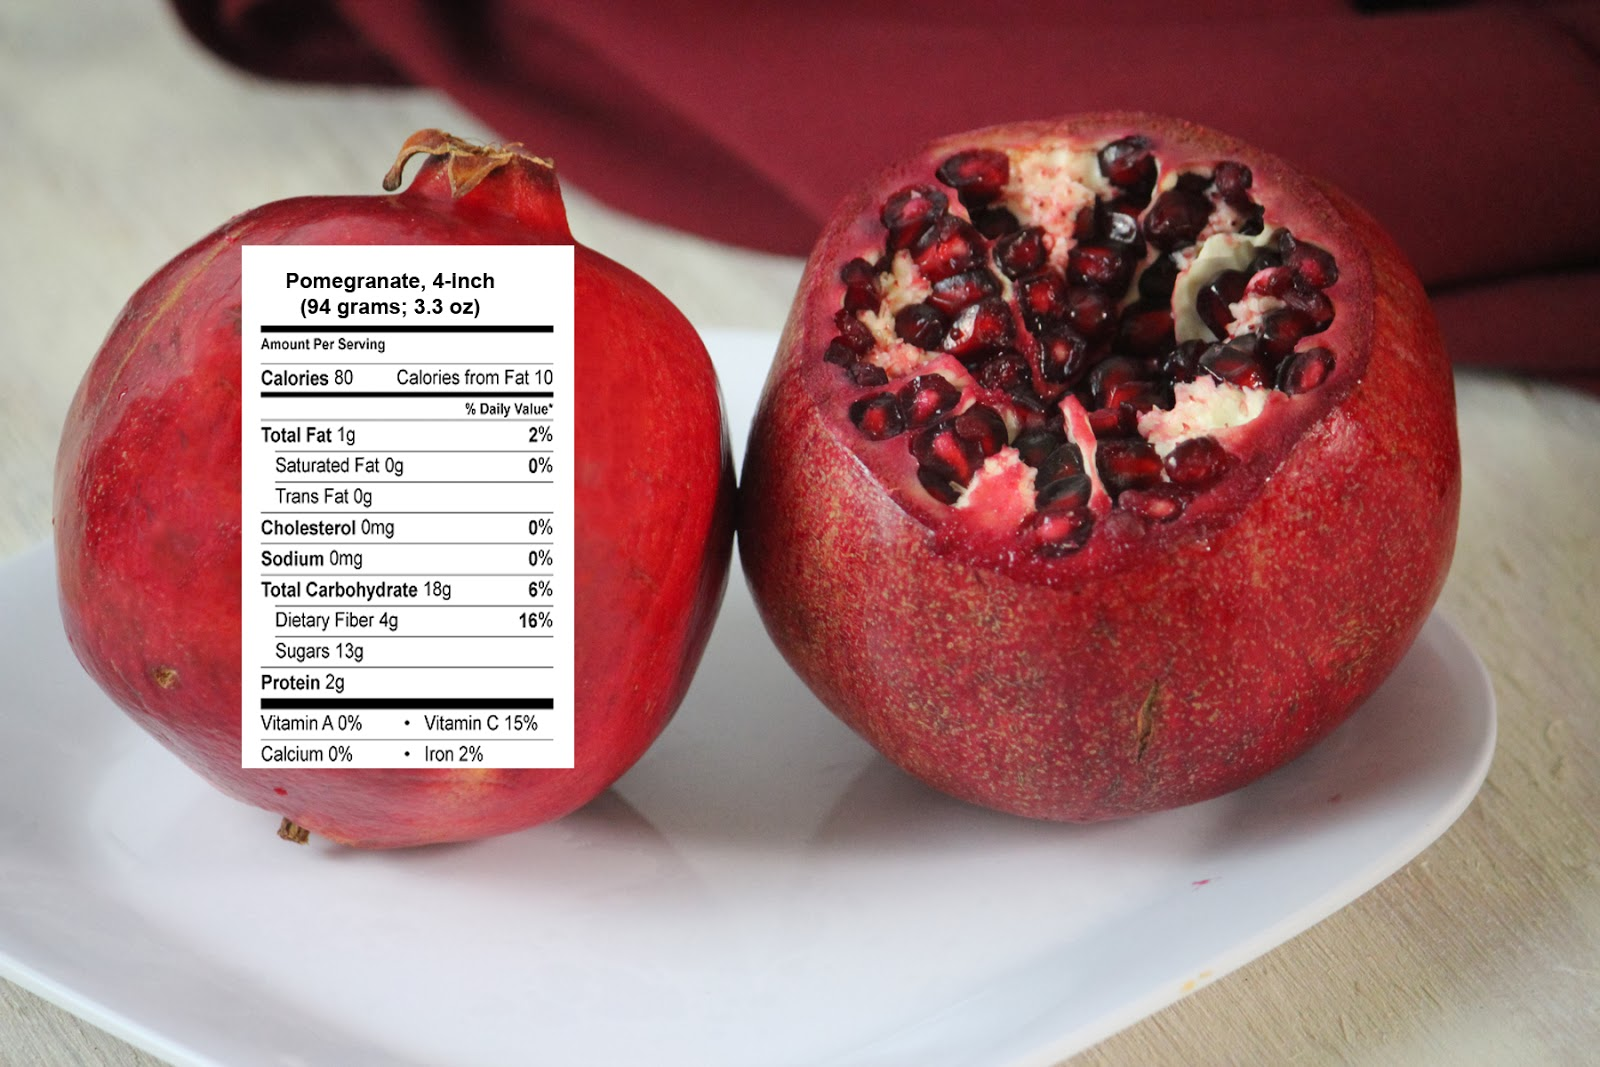 ... Blog: November, National Pomegranate Month: All About Pomegranates